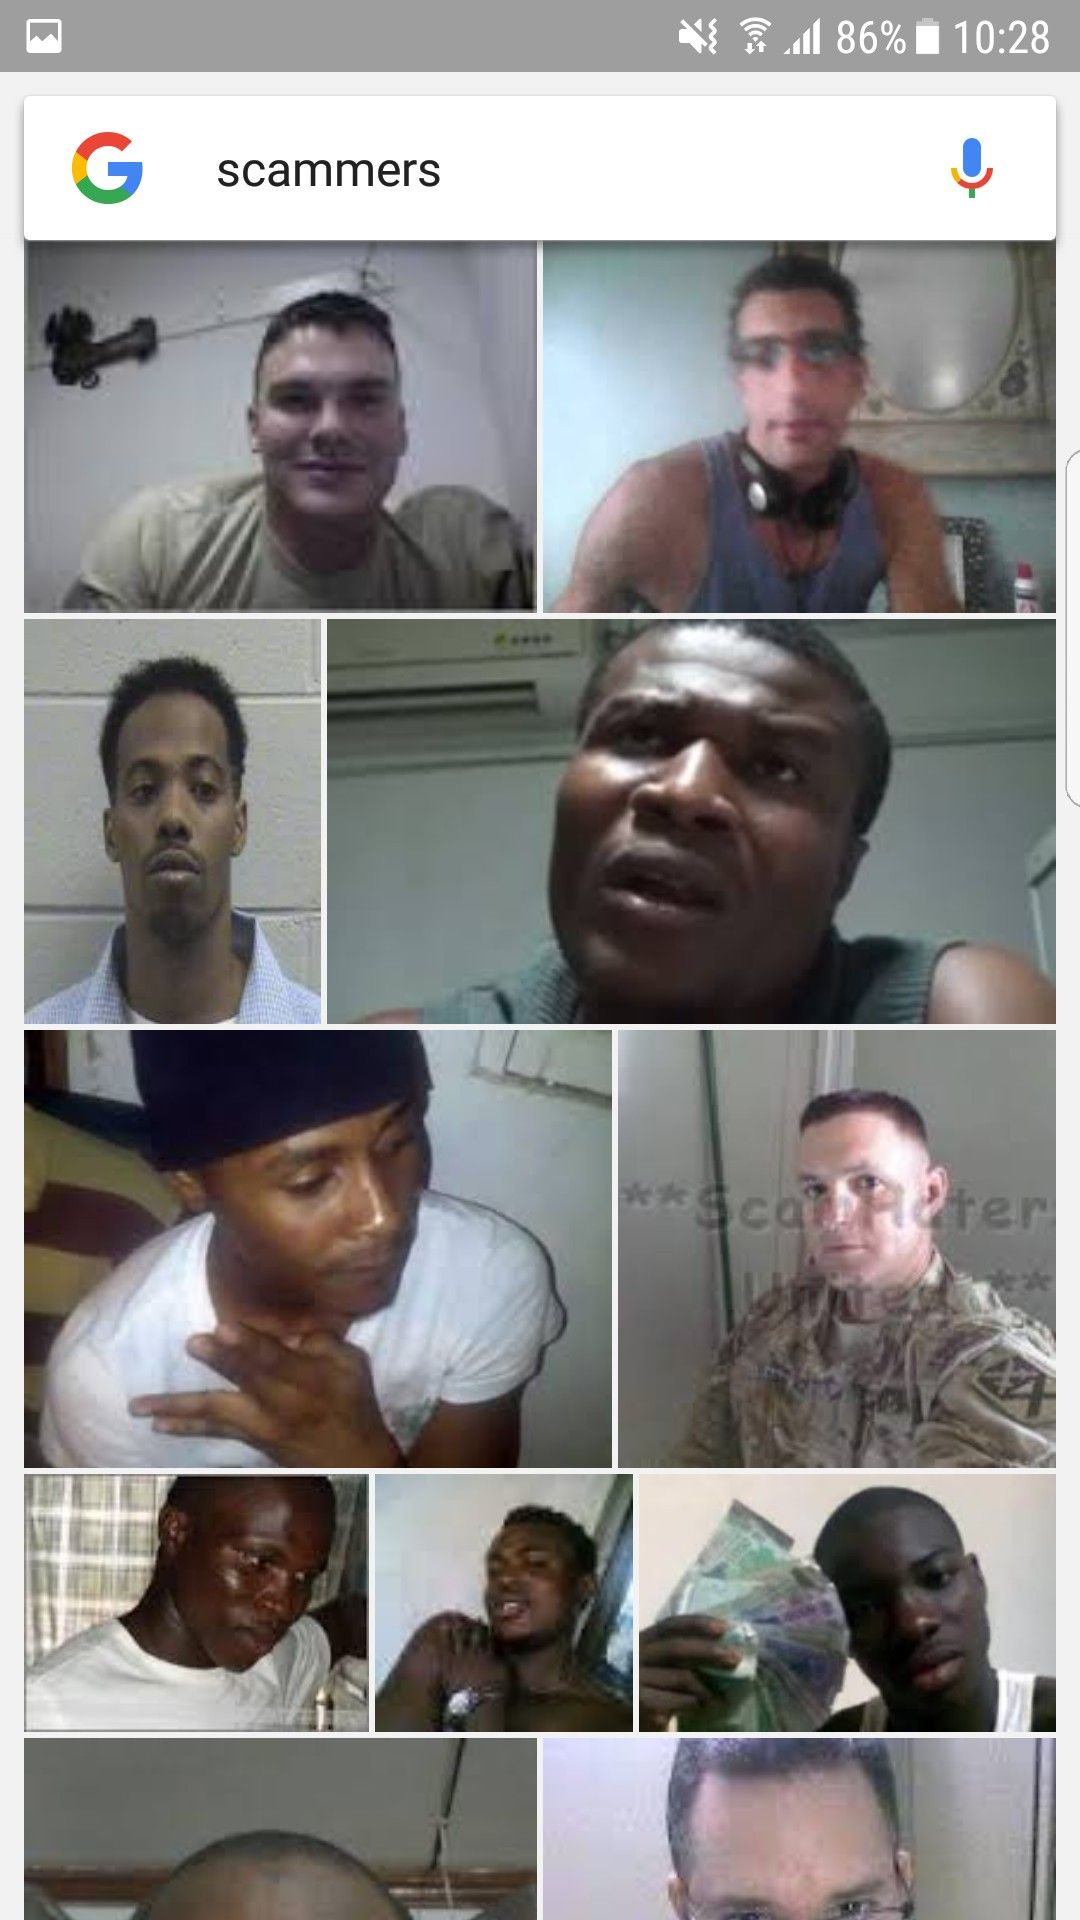 Scammers | scammers are bad | Scammer pictures, Military photos